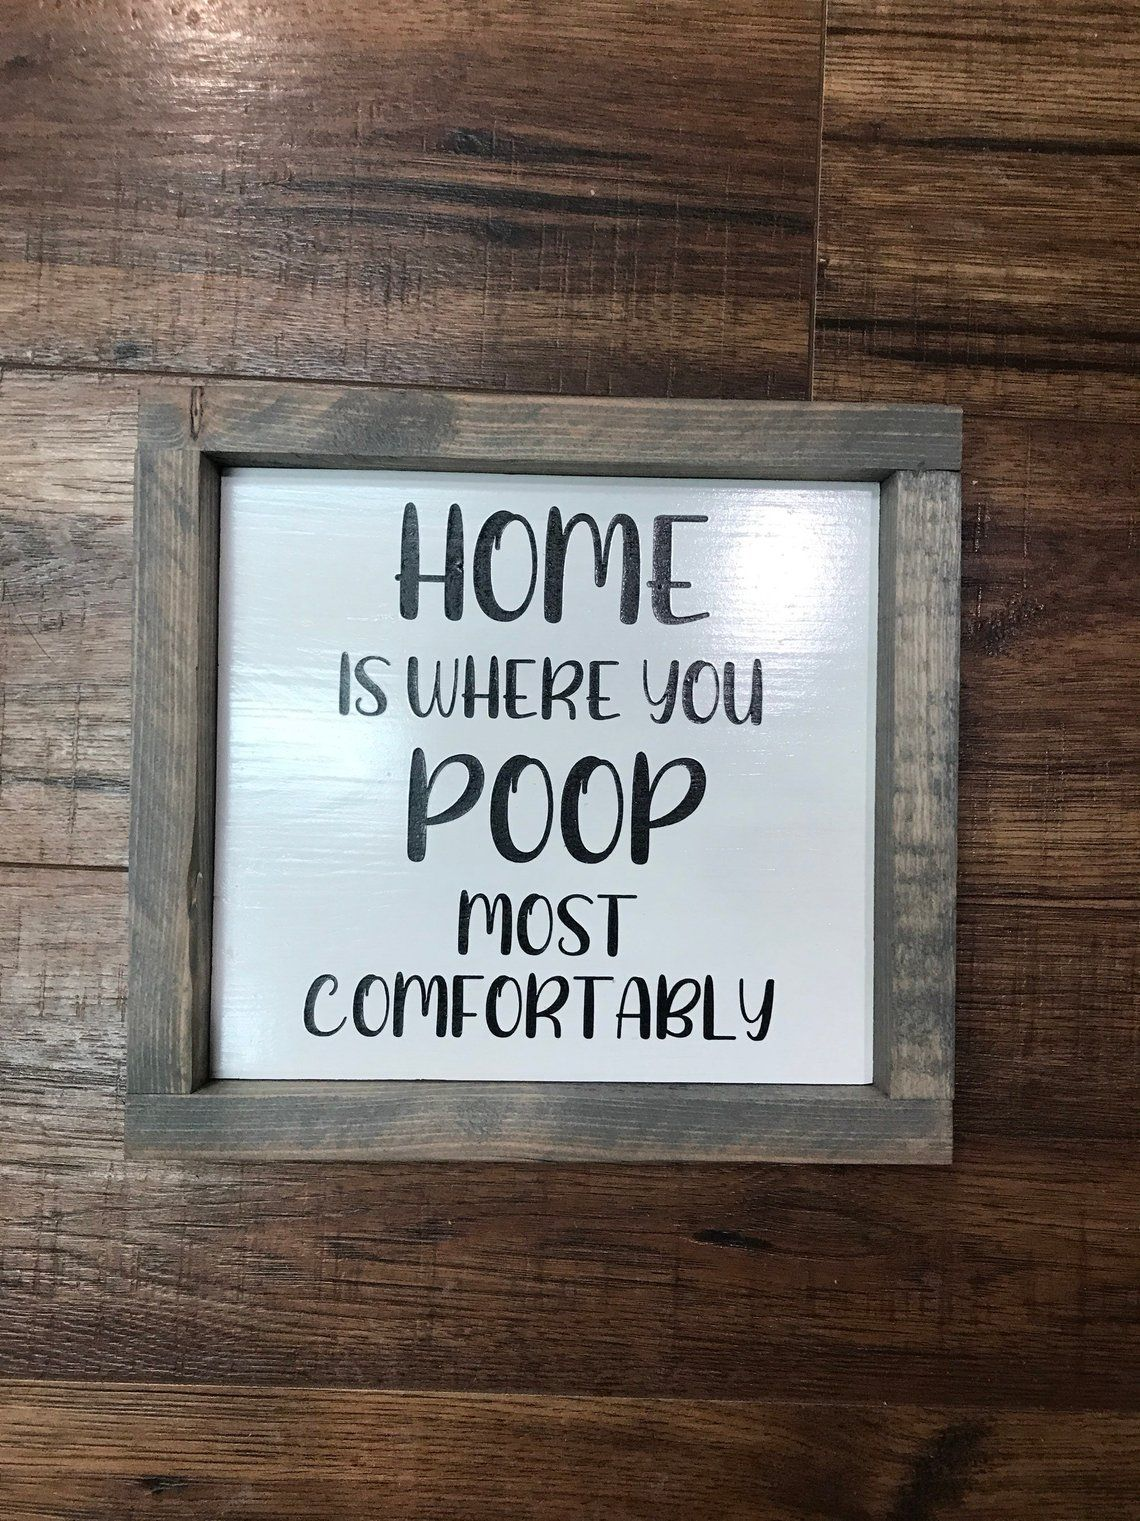 BATHROOM HUMOR/white painted background/Humorous bath decor/funny bathroom sign/fart zone/have a nice poop/poop most comfortably/farmhouse d